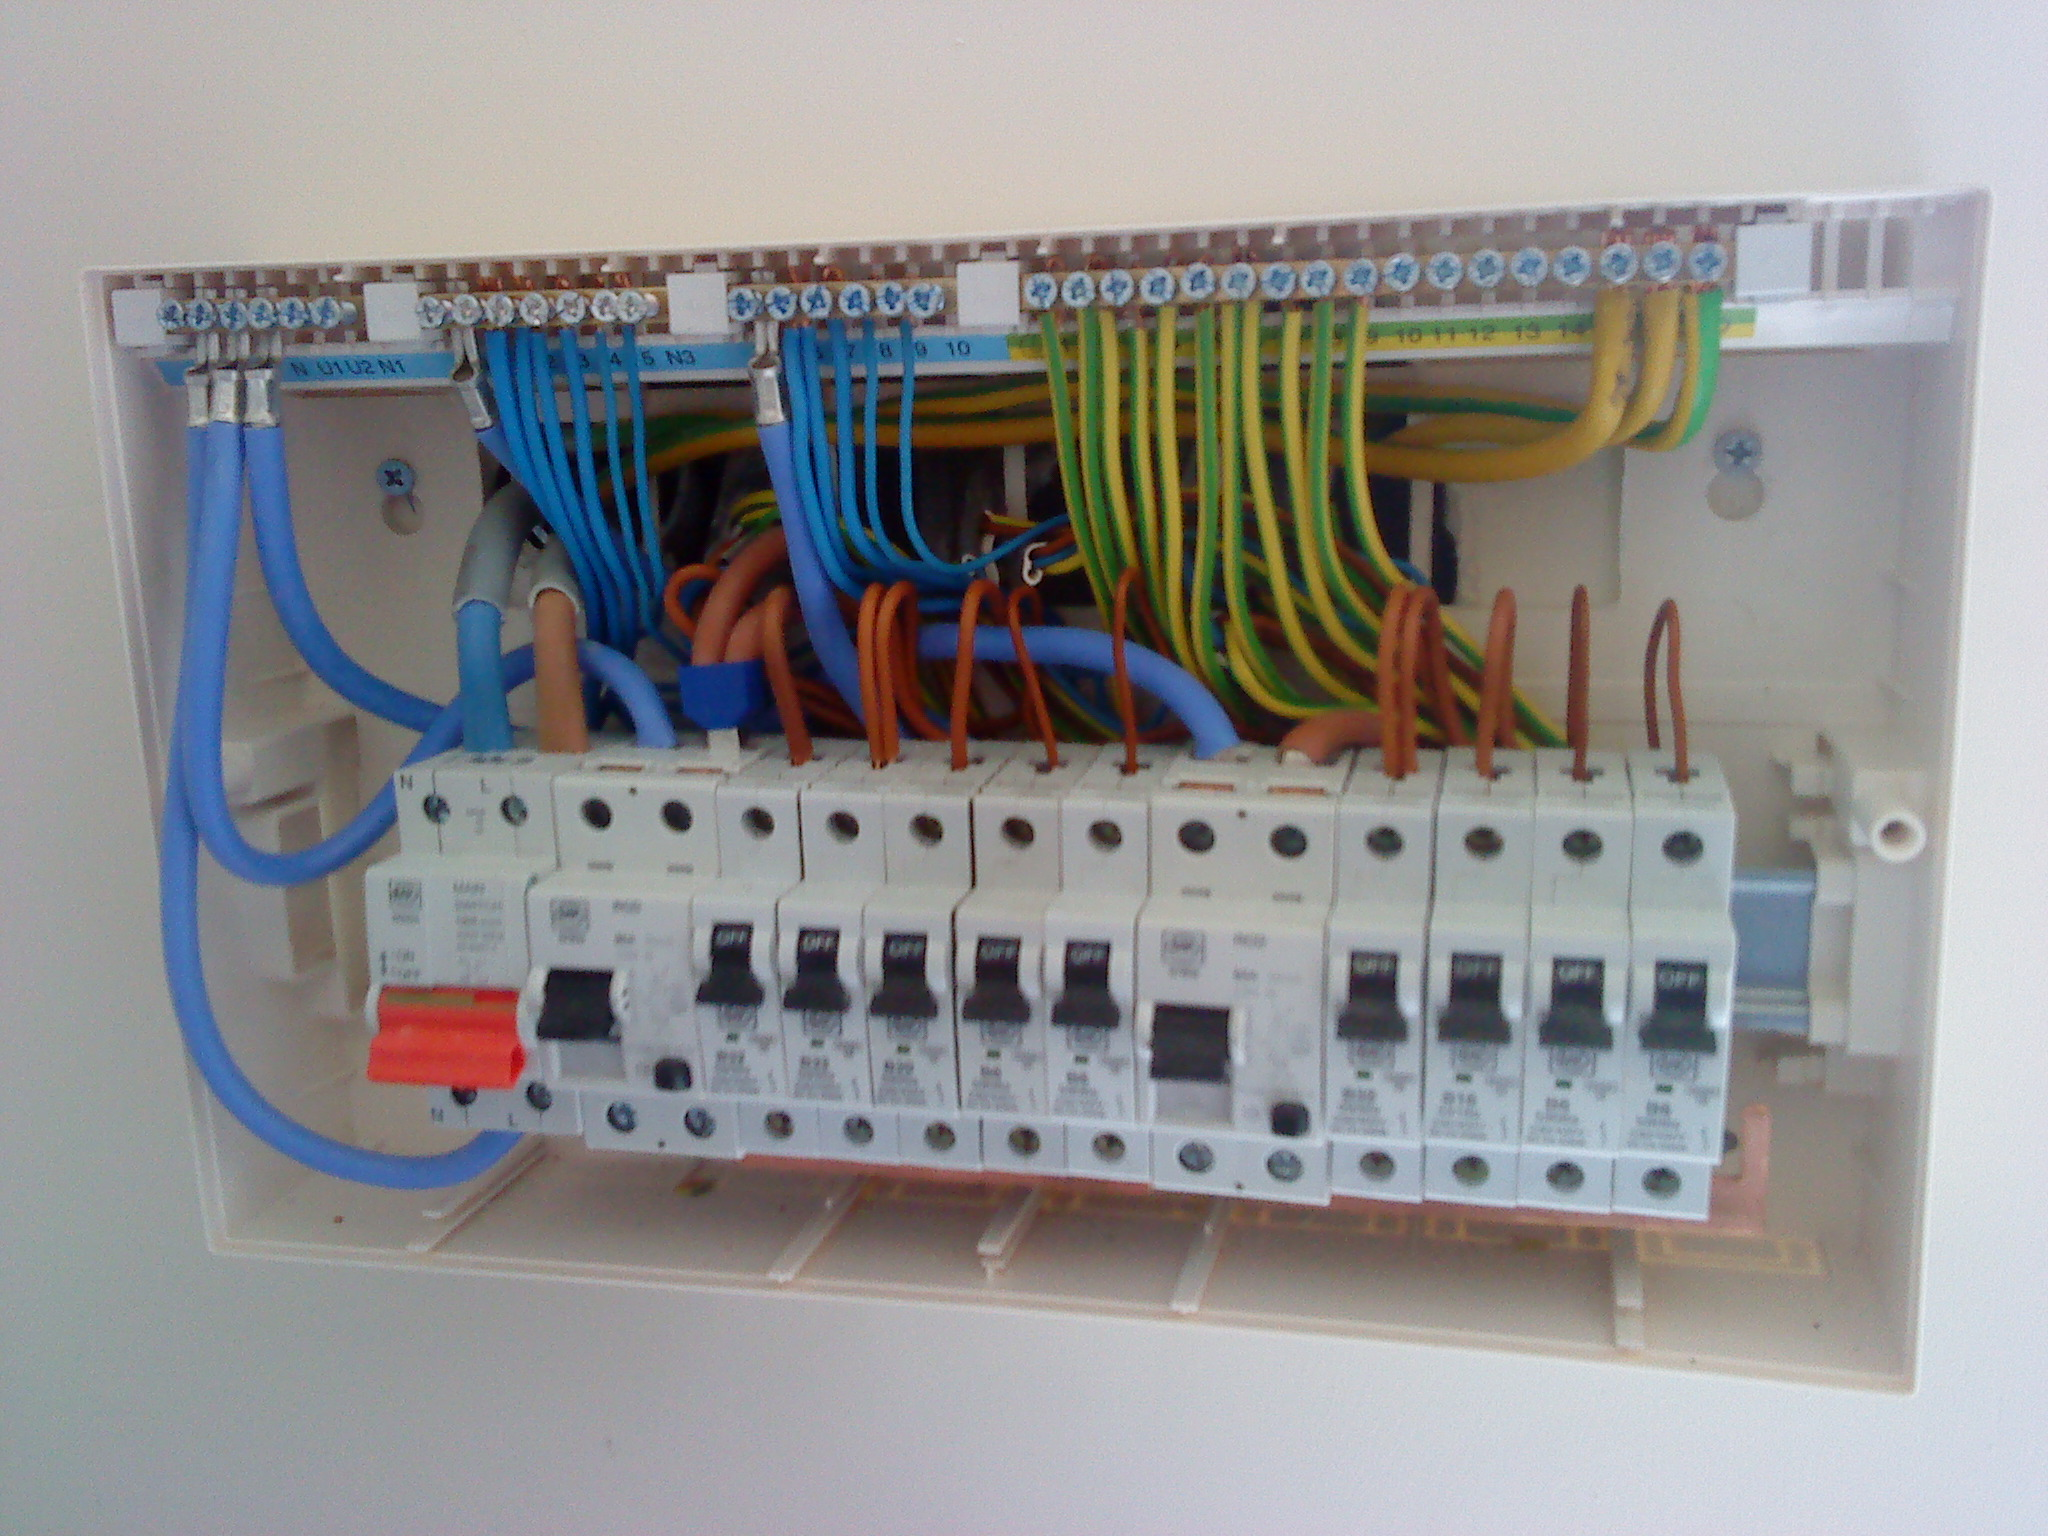 fuse box outside of house